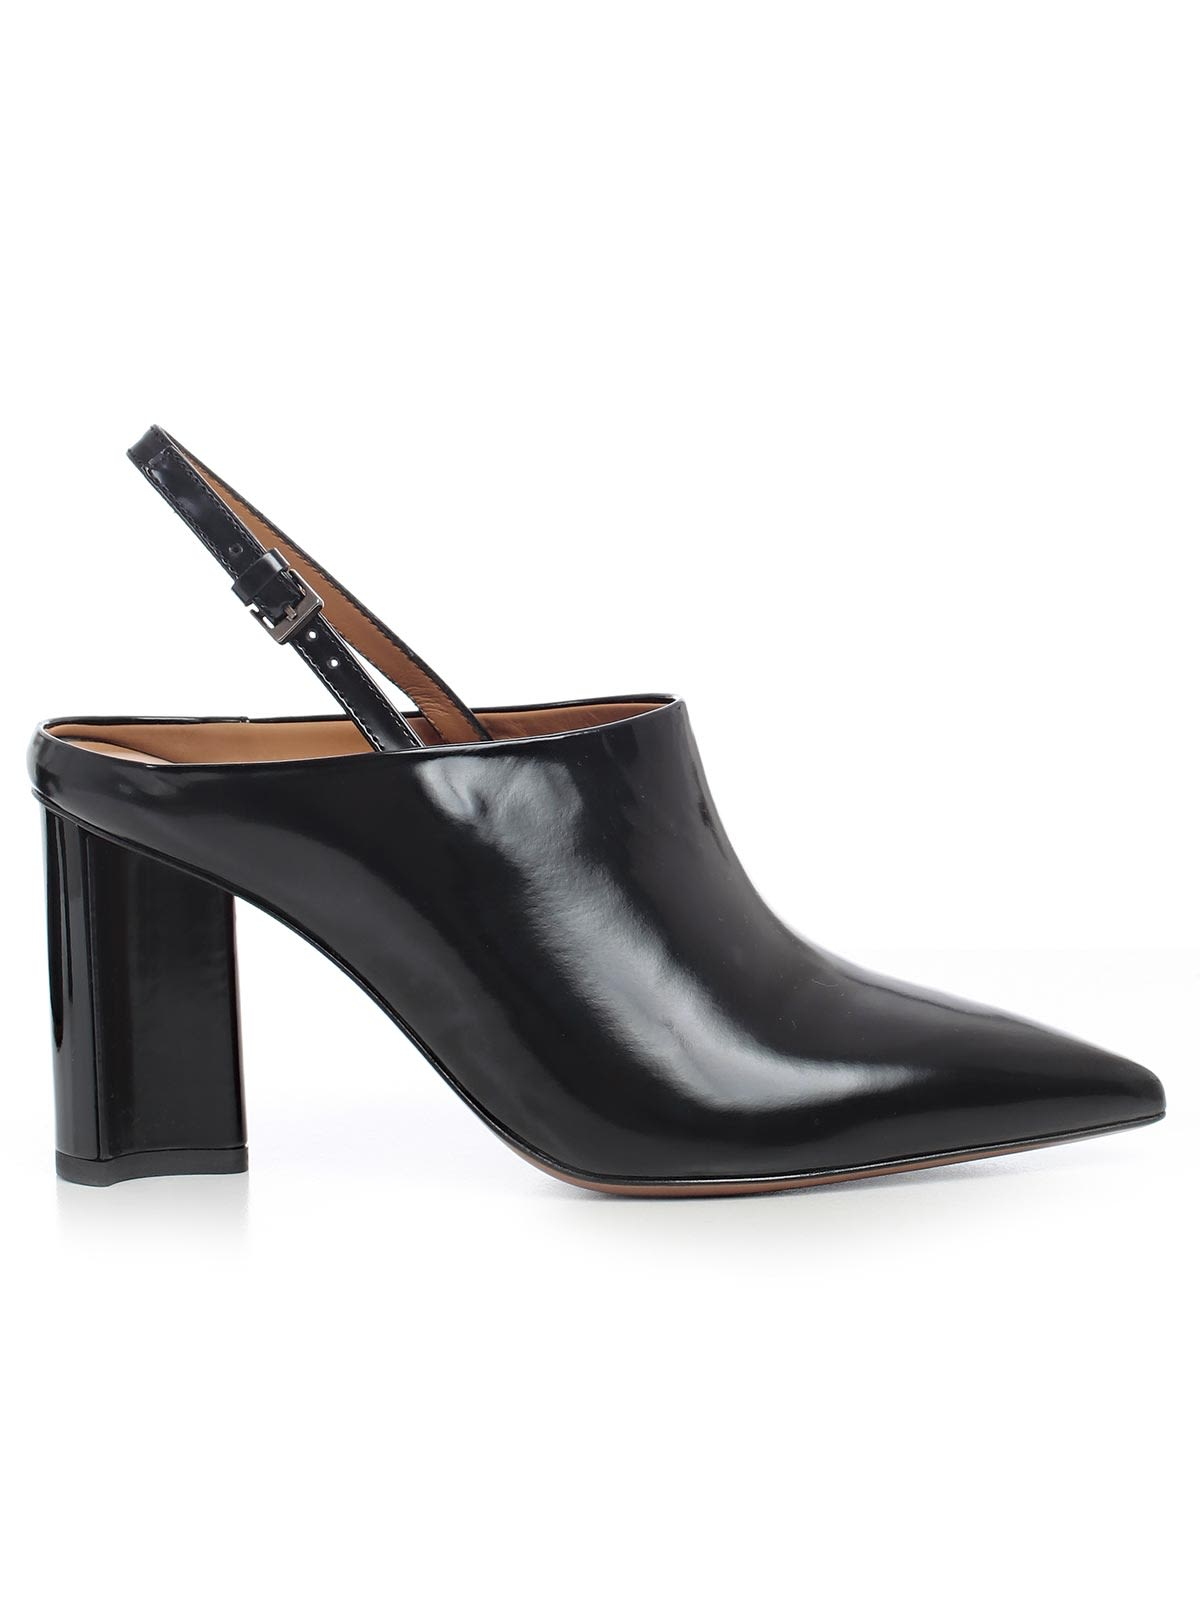 ROBERT CLERGERIE SLING BACK MULES